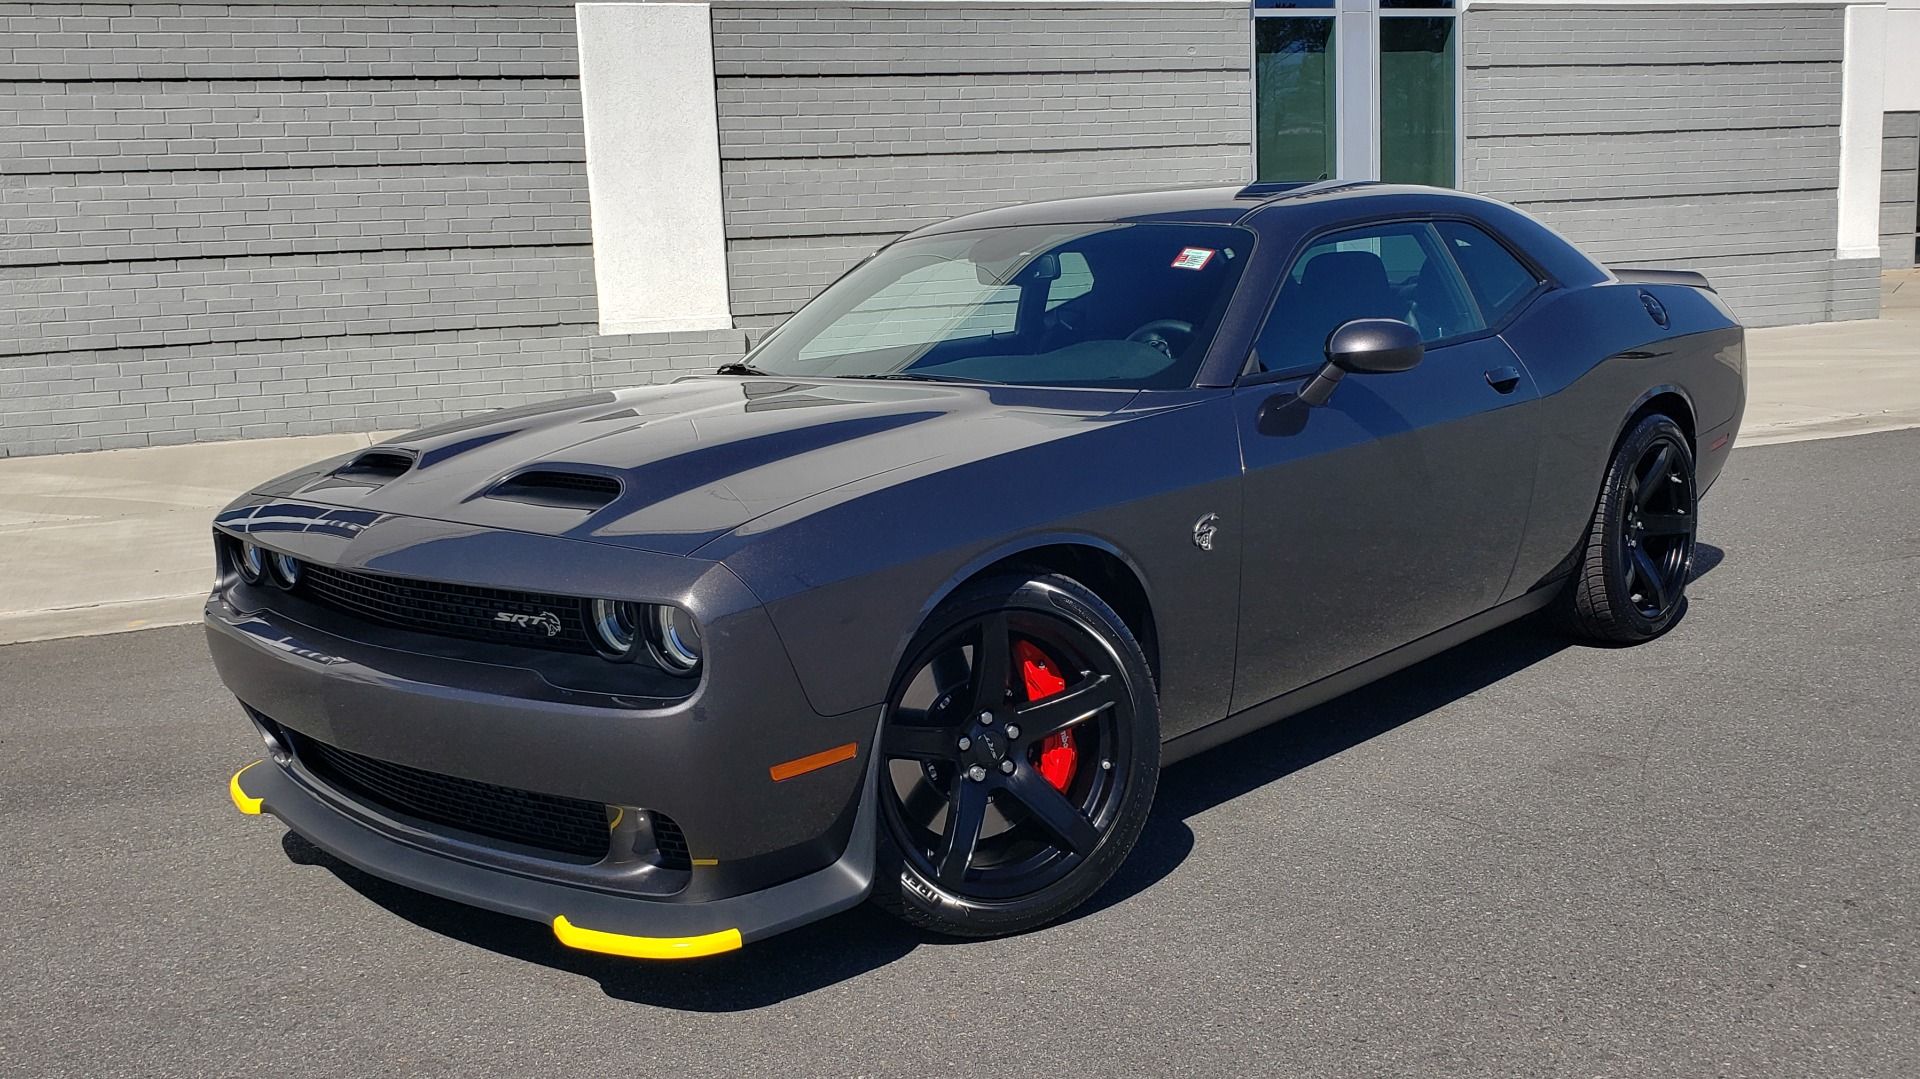 Used 2020 Dodge CHALLENGER SRT HELLCAT (717HP) / NAV / AUTO / CLOTH / REARVIEW / LOW MILES for sale Sold at Formula Imports in Charlotte NC 28227 1